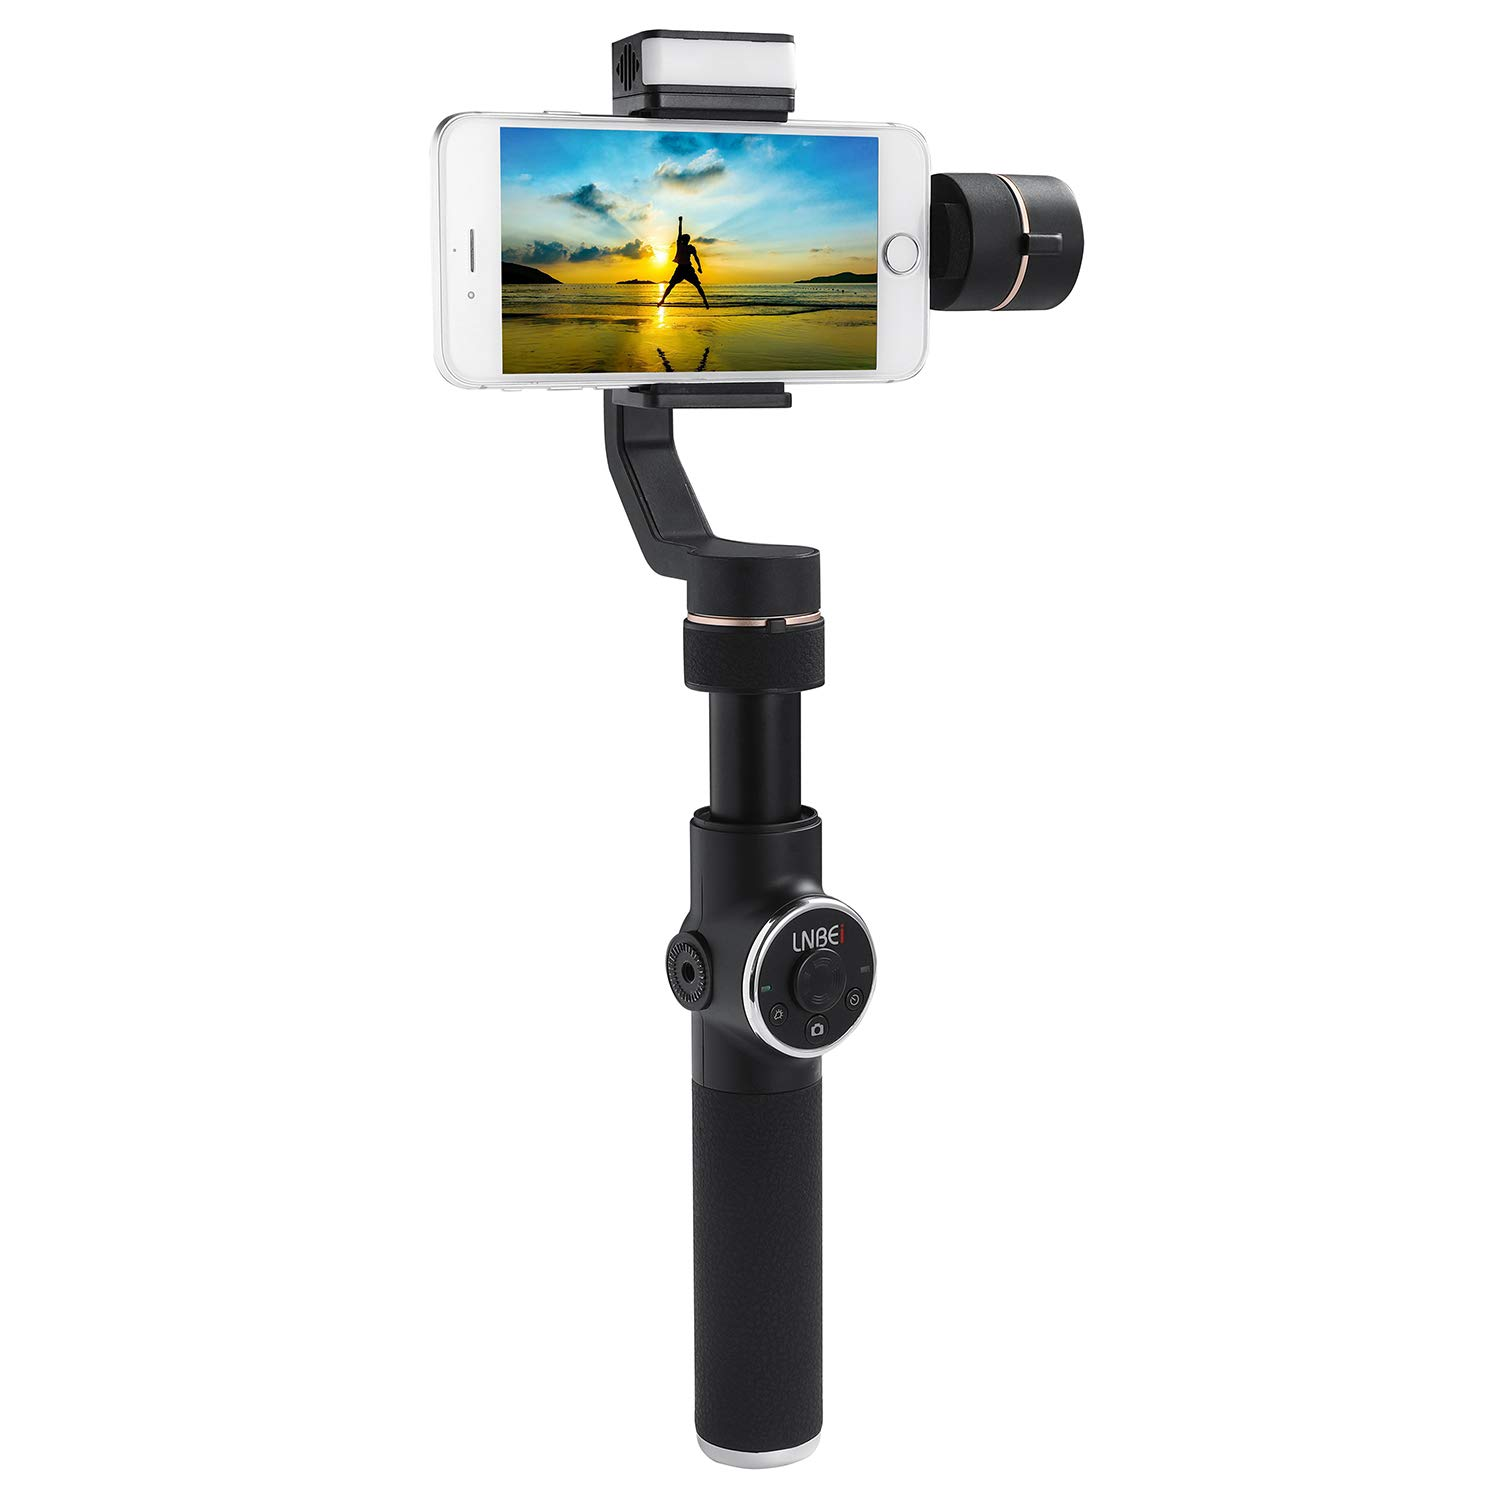 LNBEI L5 3-Axis Handheld Gimbal Stabilizer Lighting Zoom Face Tracking Time-Lapse Portable PTZ Stabilizer Panorama Mode Gopro Sports Camera for Phone 8 X Xs Max Xr X 8 Plus 7 6 Smartphone